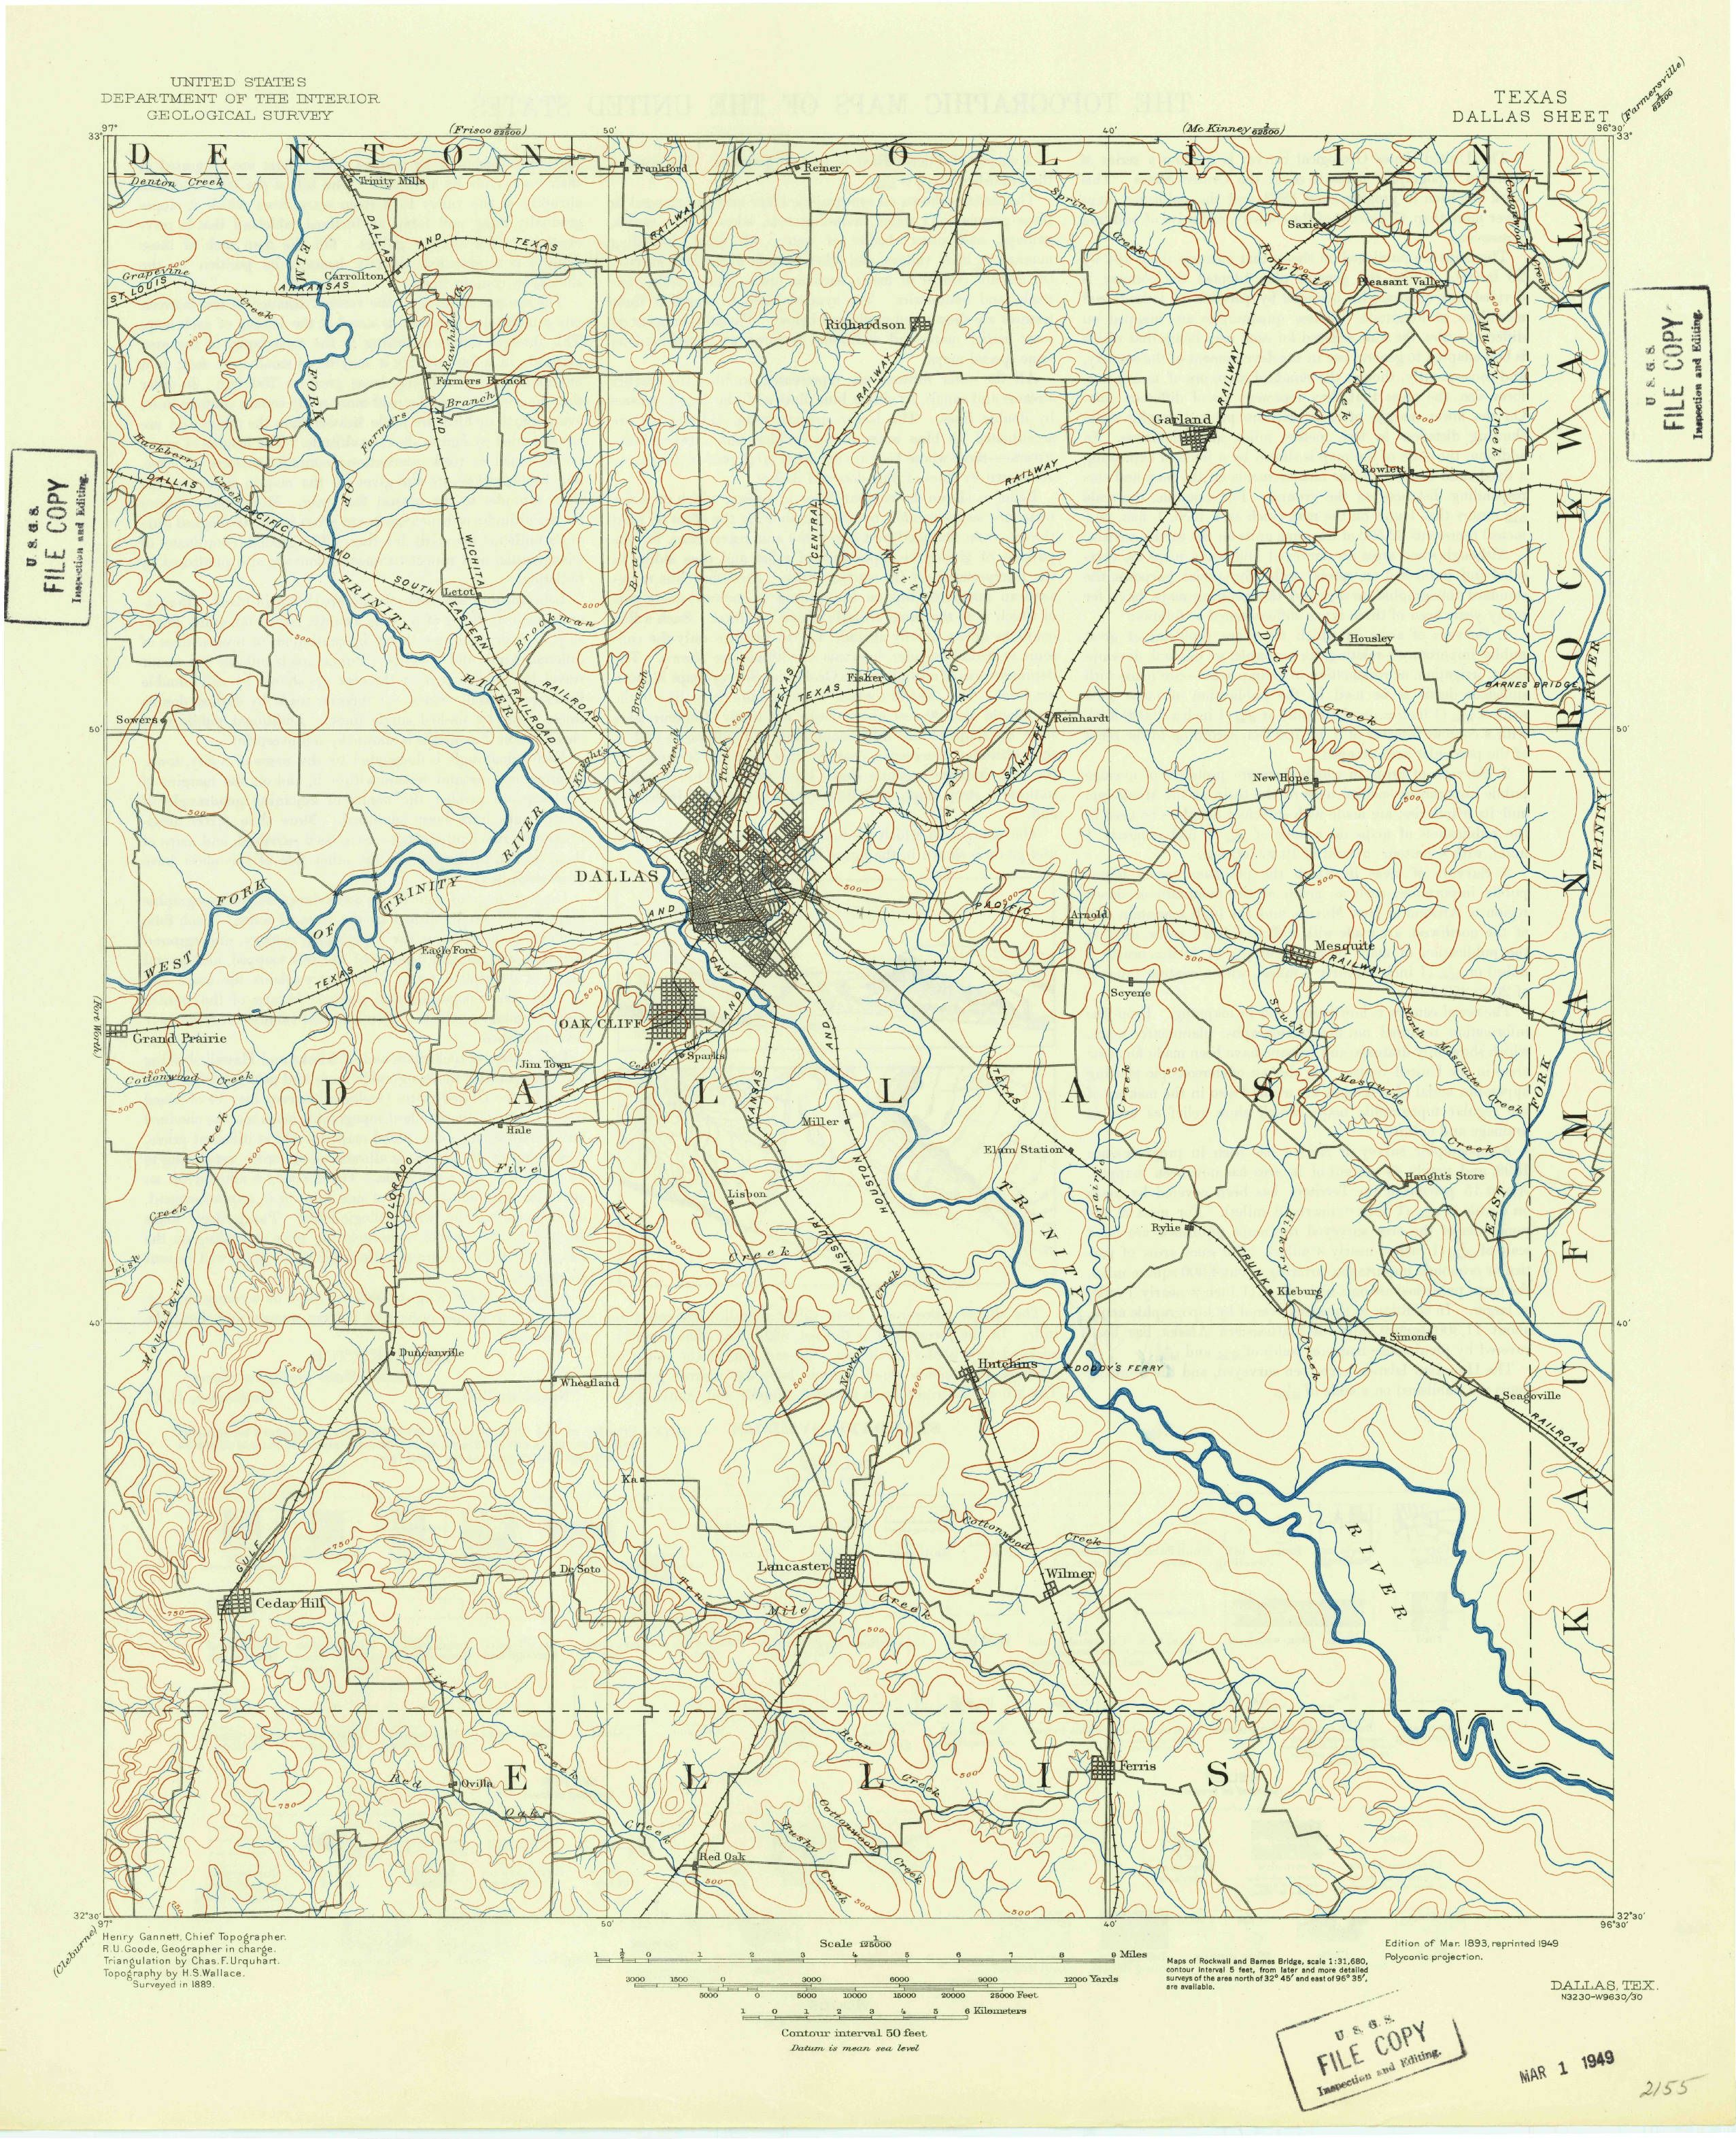 Dallas, TX—1893. Map from the USGS Historical Topographic Map ...